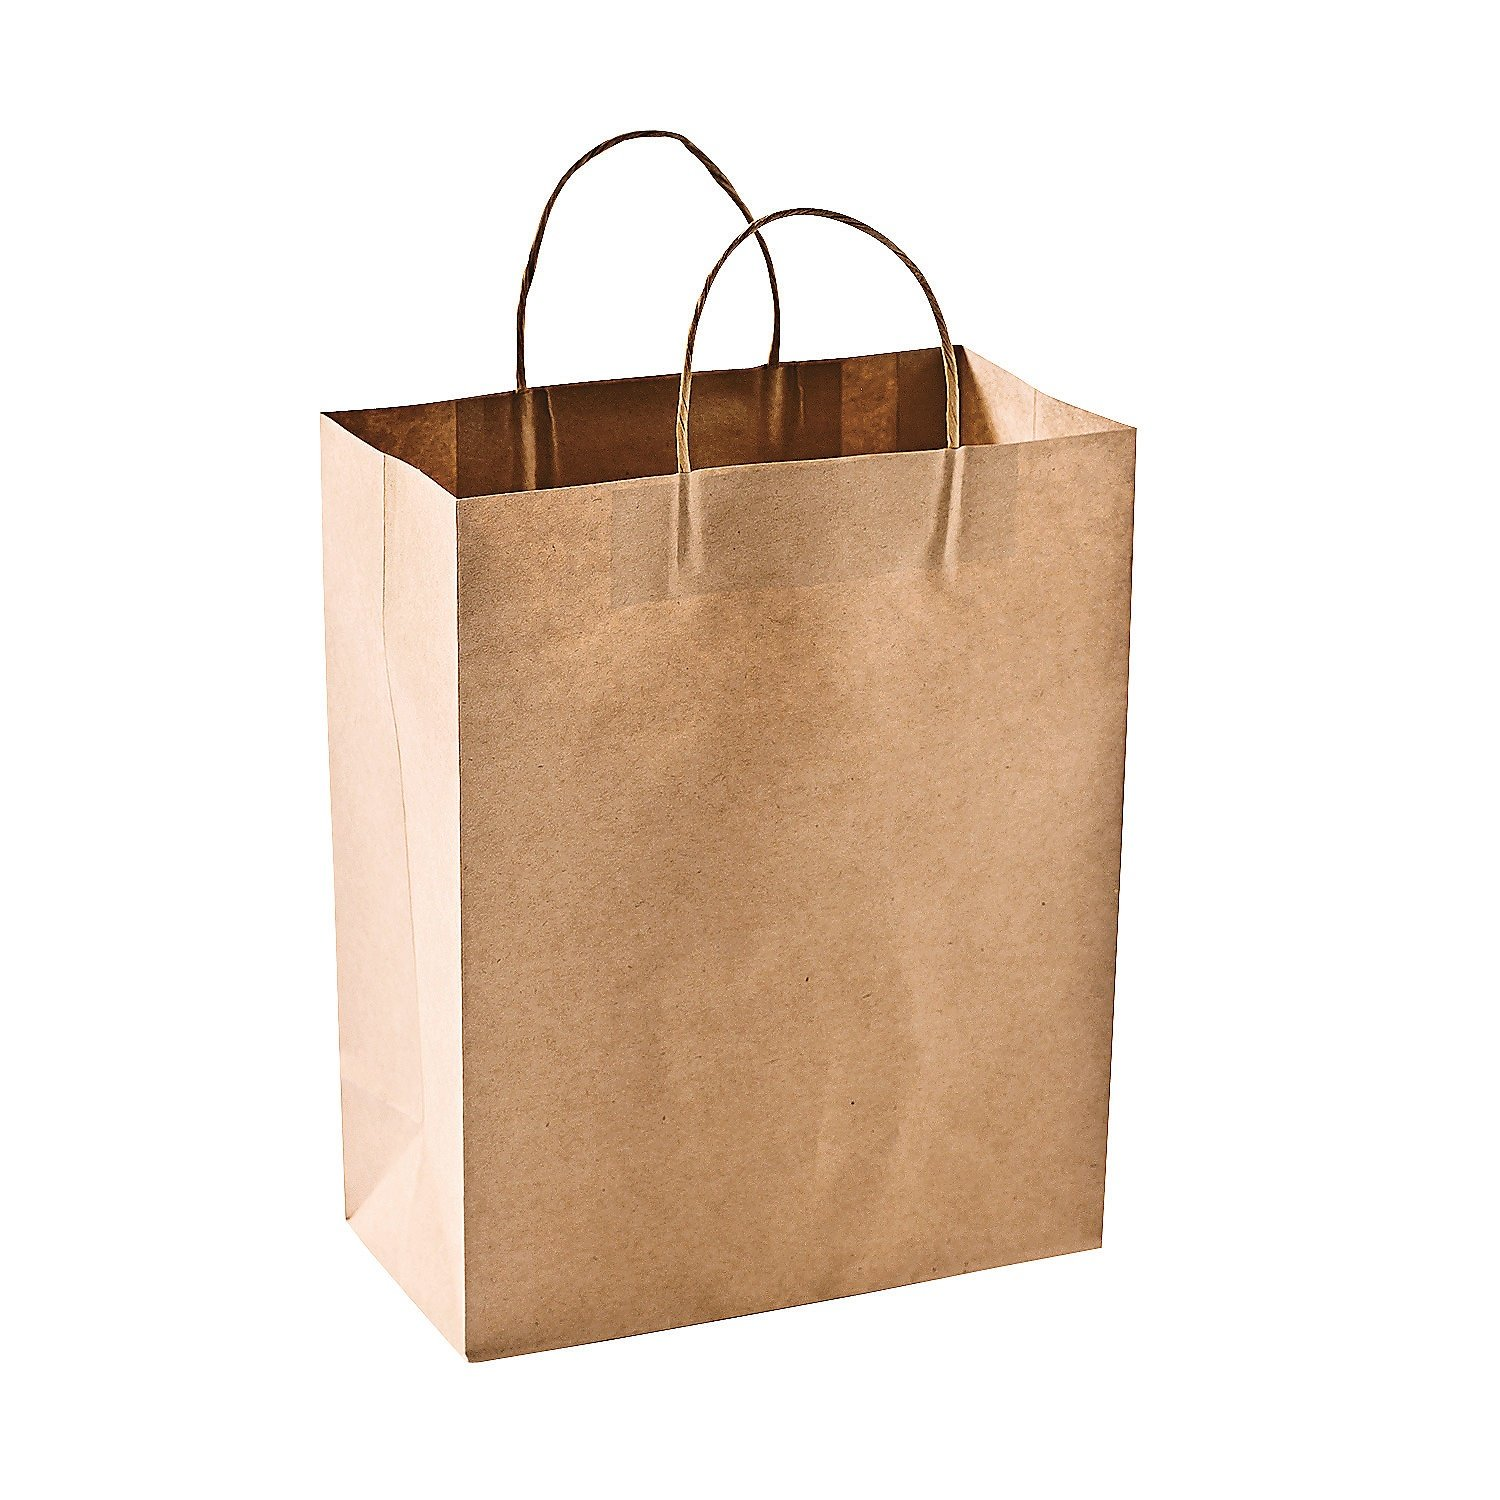 Large brown paper gift bags